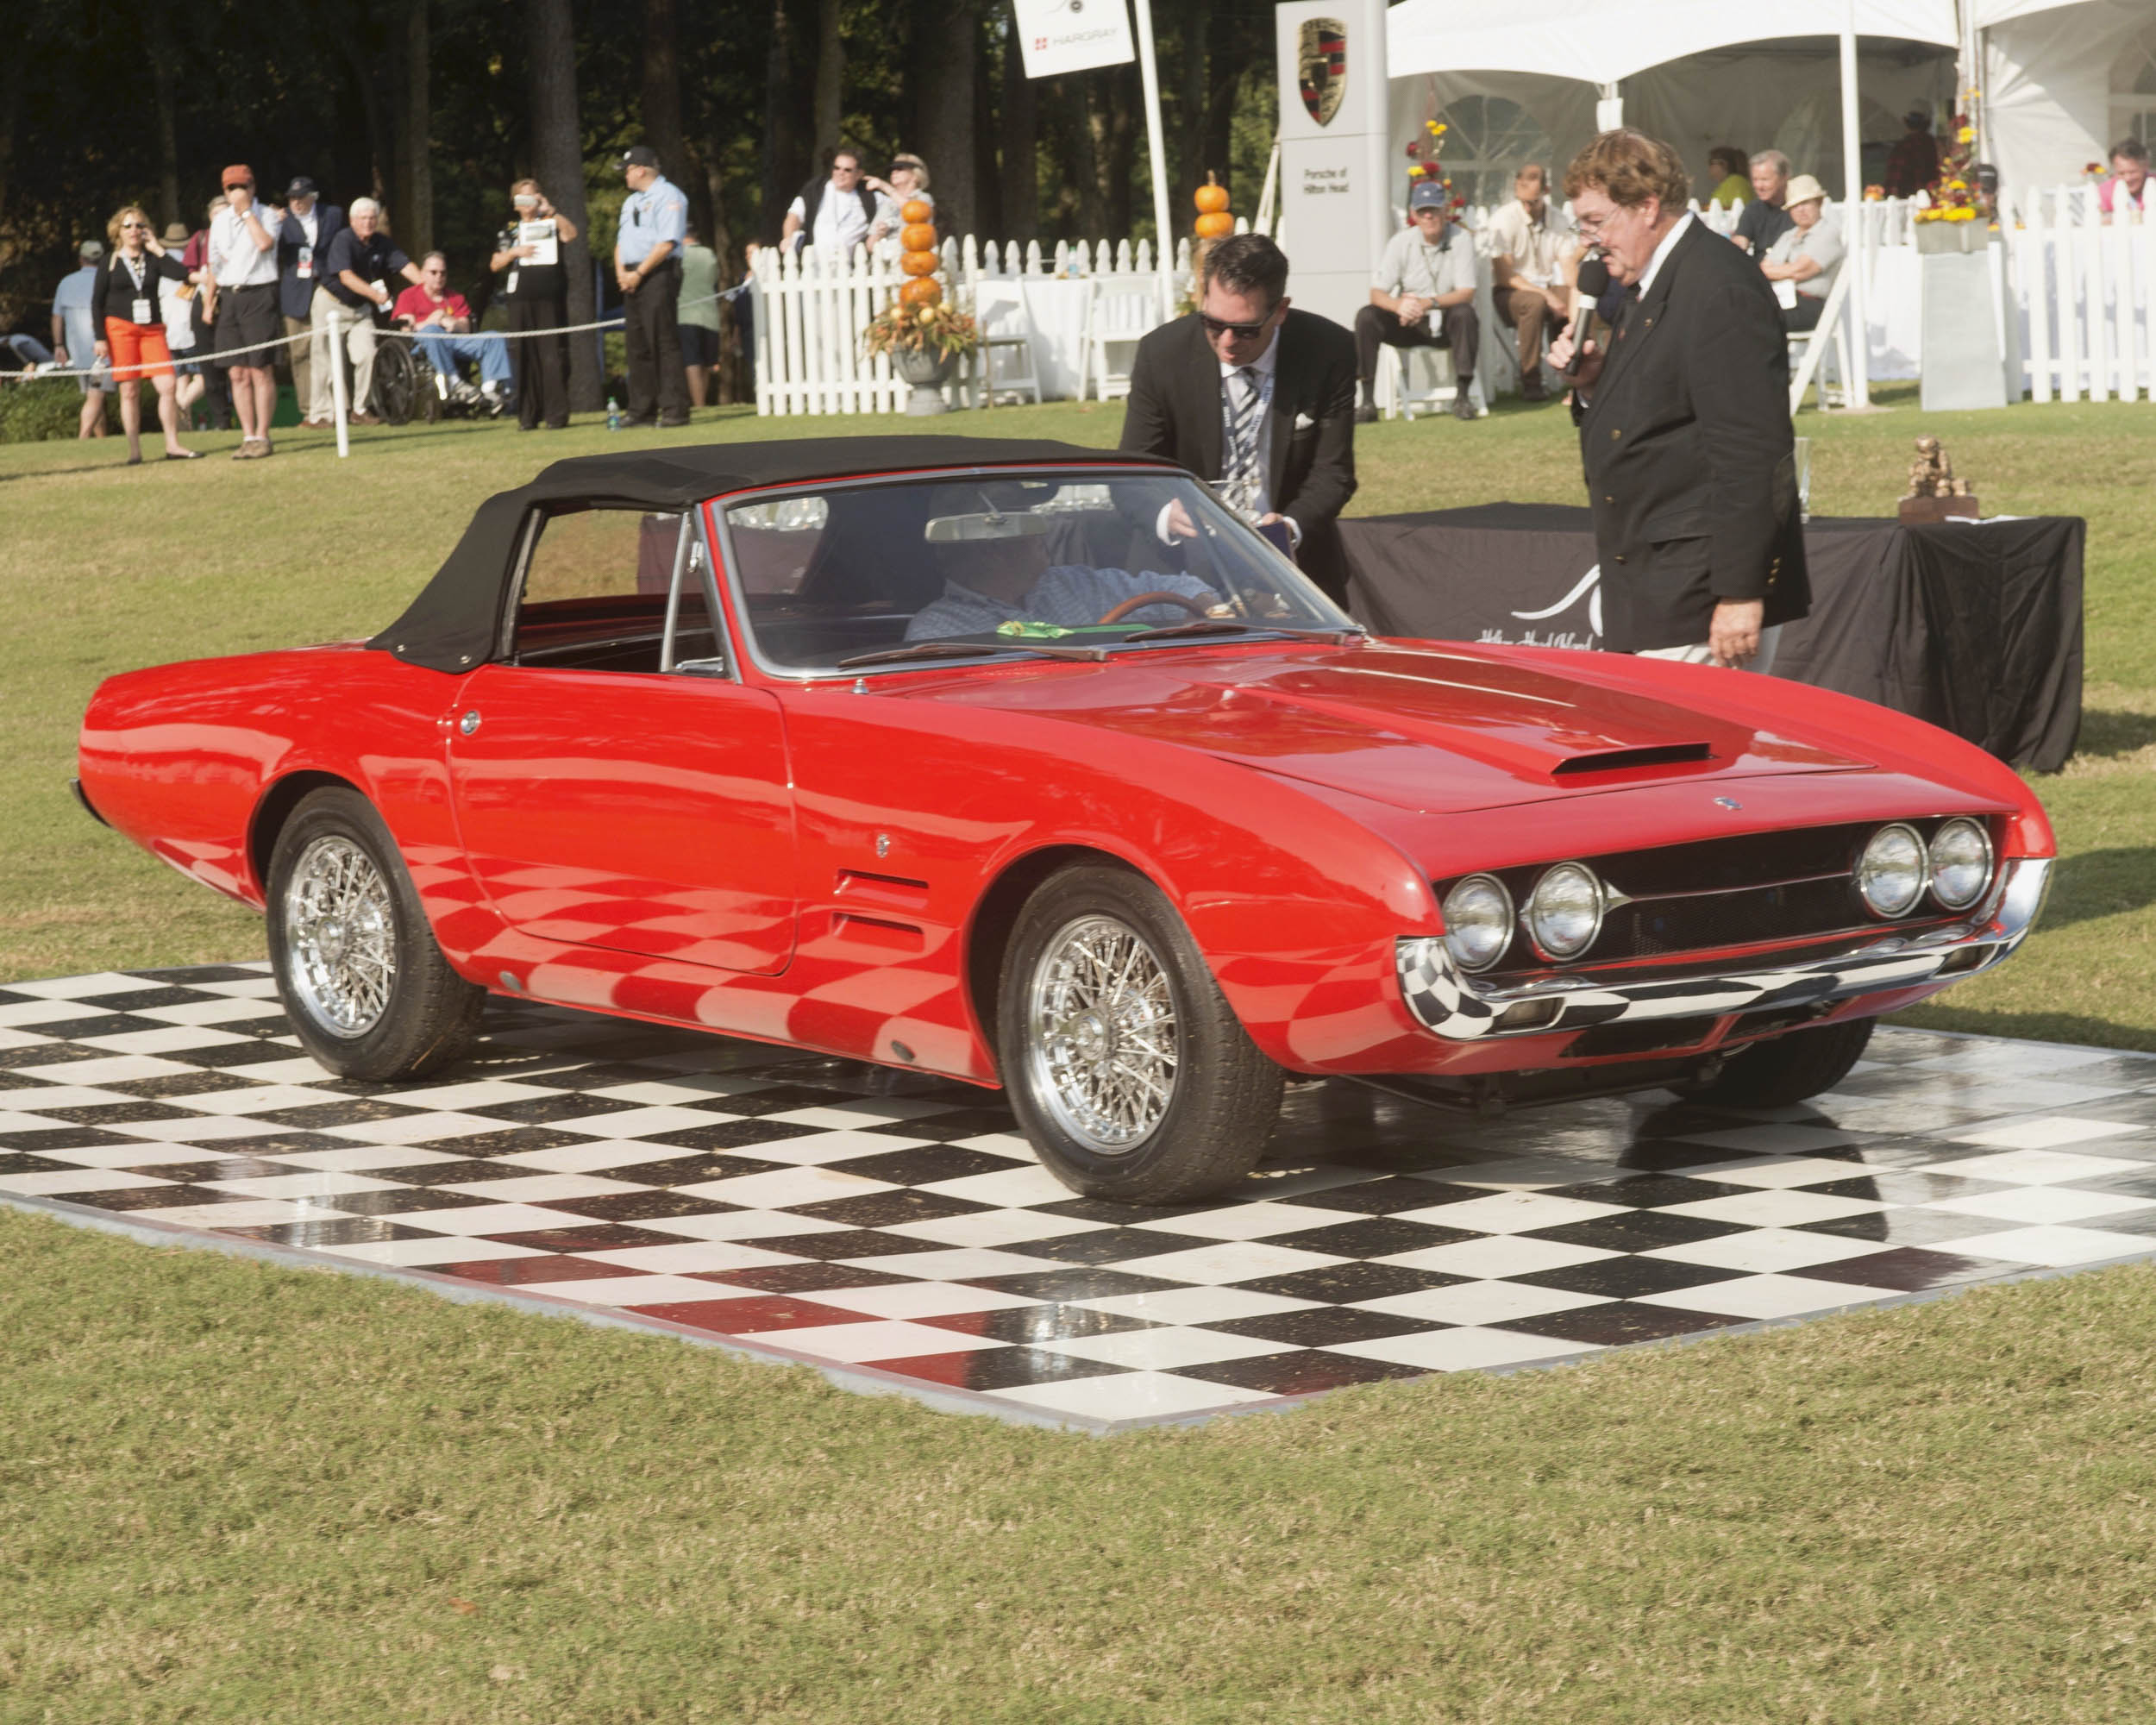 Jim MacDougald's Ghia 450/SS at the Hilton Head Concours d'Elegance.